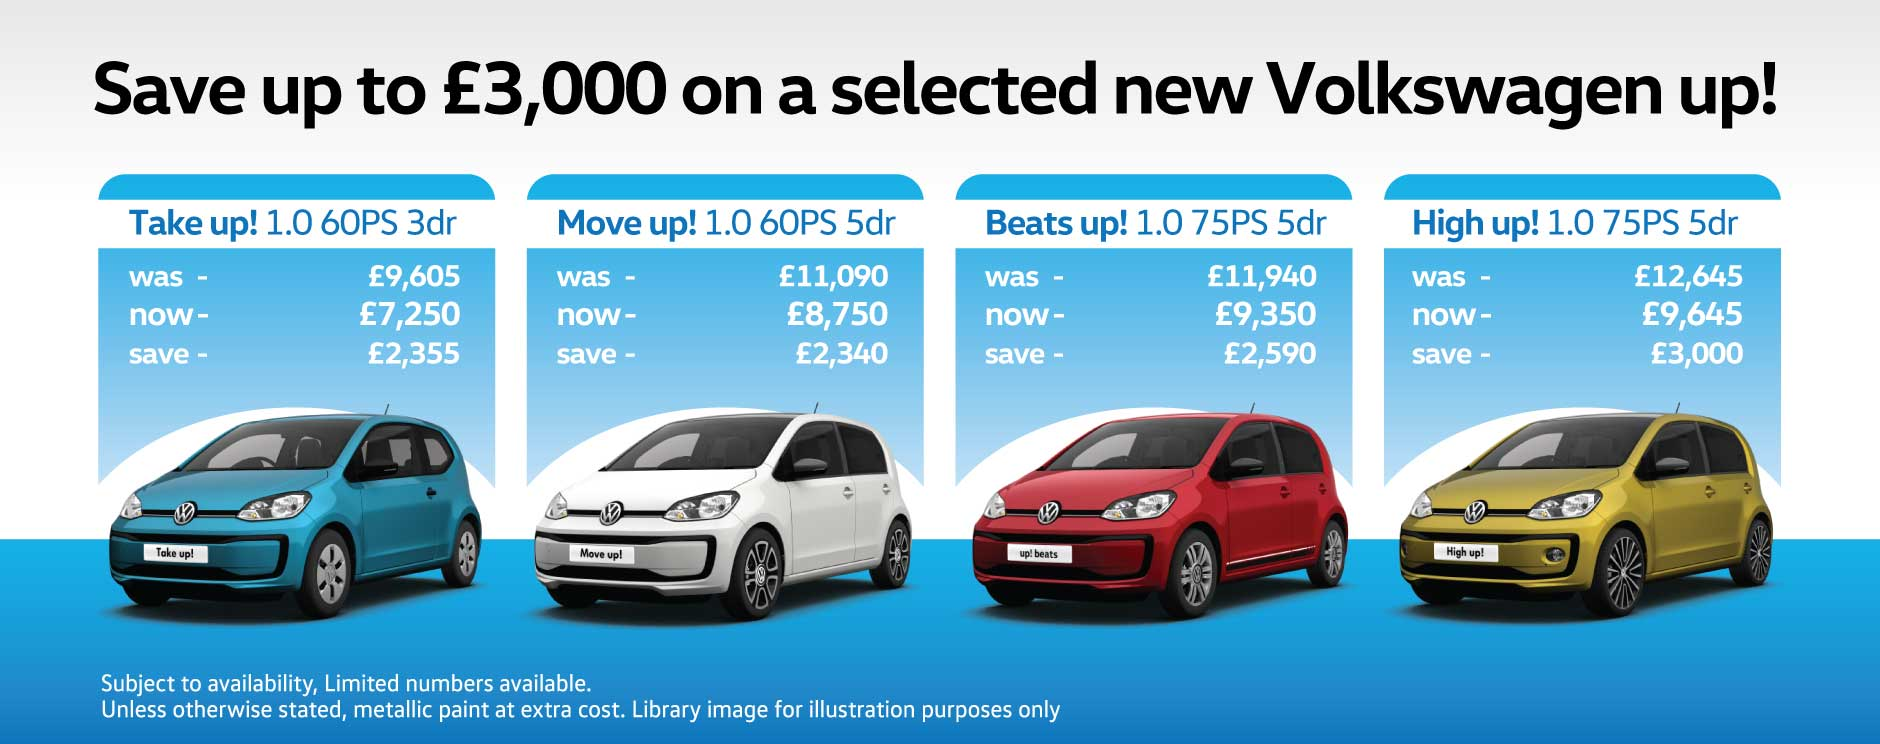 Volkswagen up cash WNS bb 110918